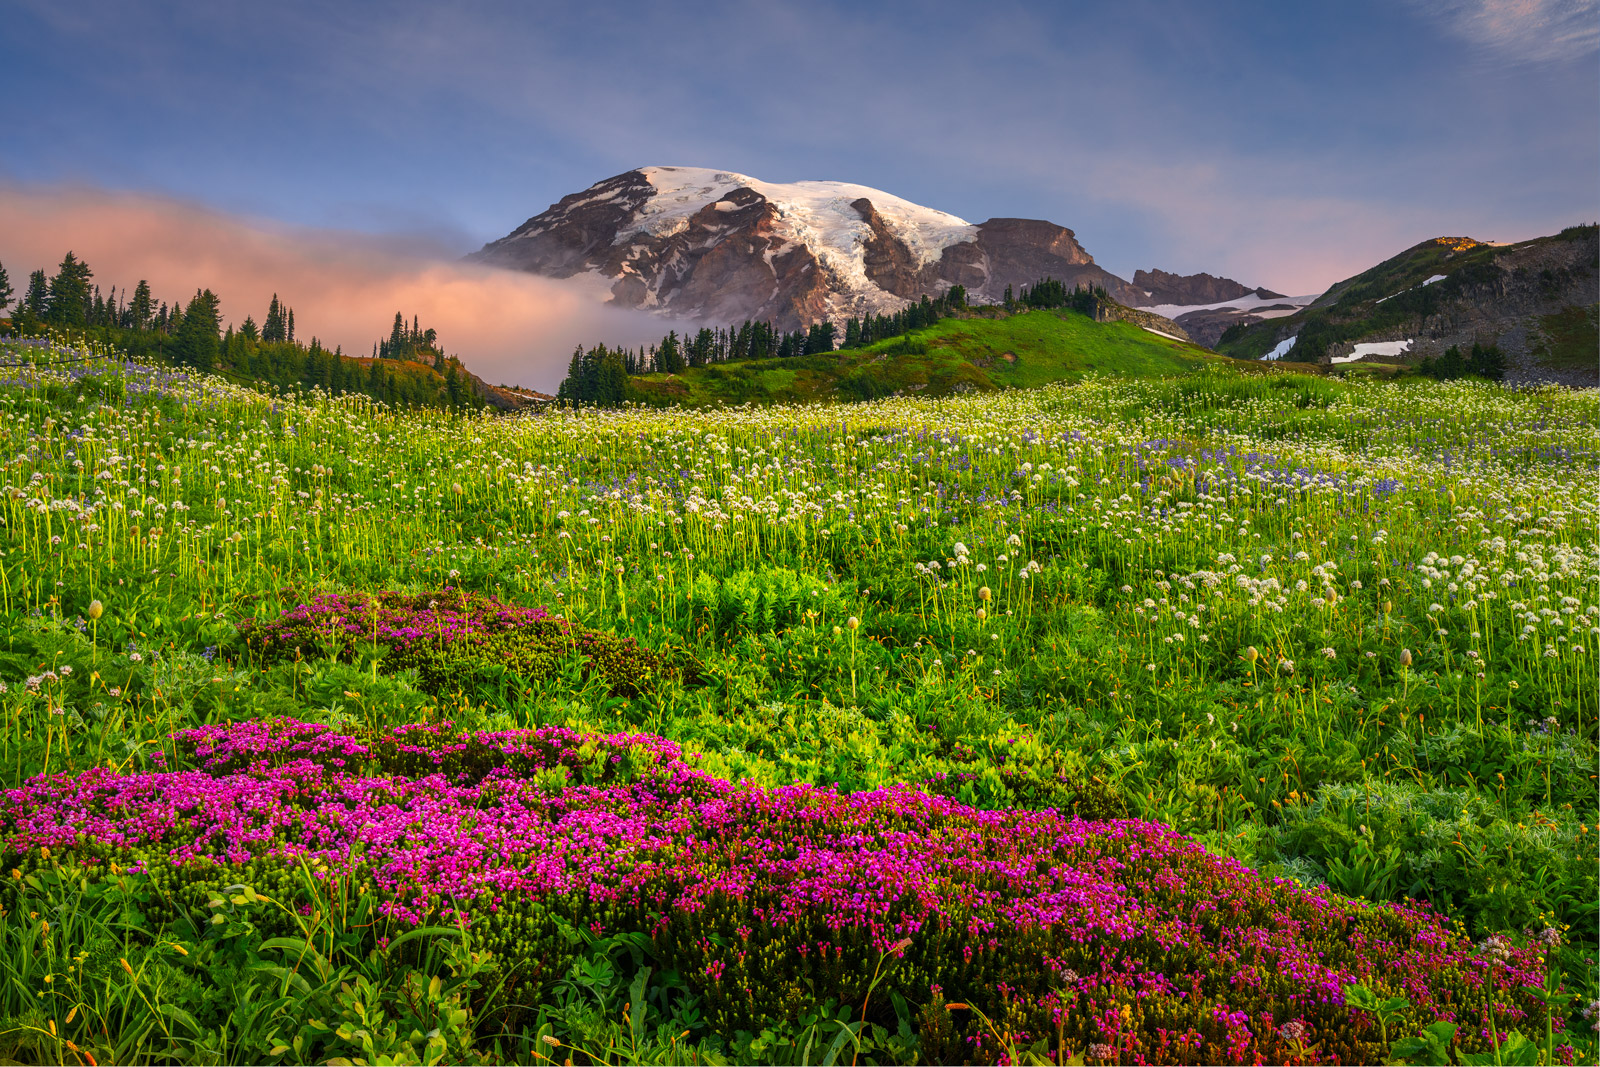 Washington, Mount Rainier, National Park, Mountain, Flowers, Christmas, Fine Art, Landscape, Photograph